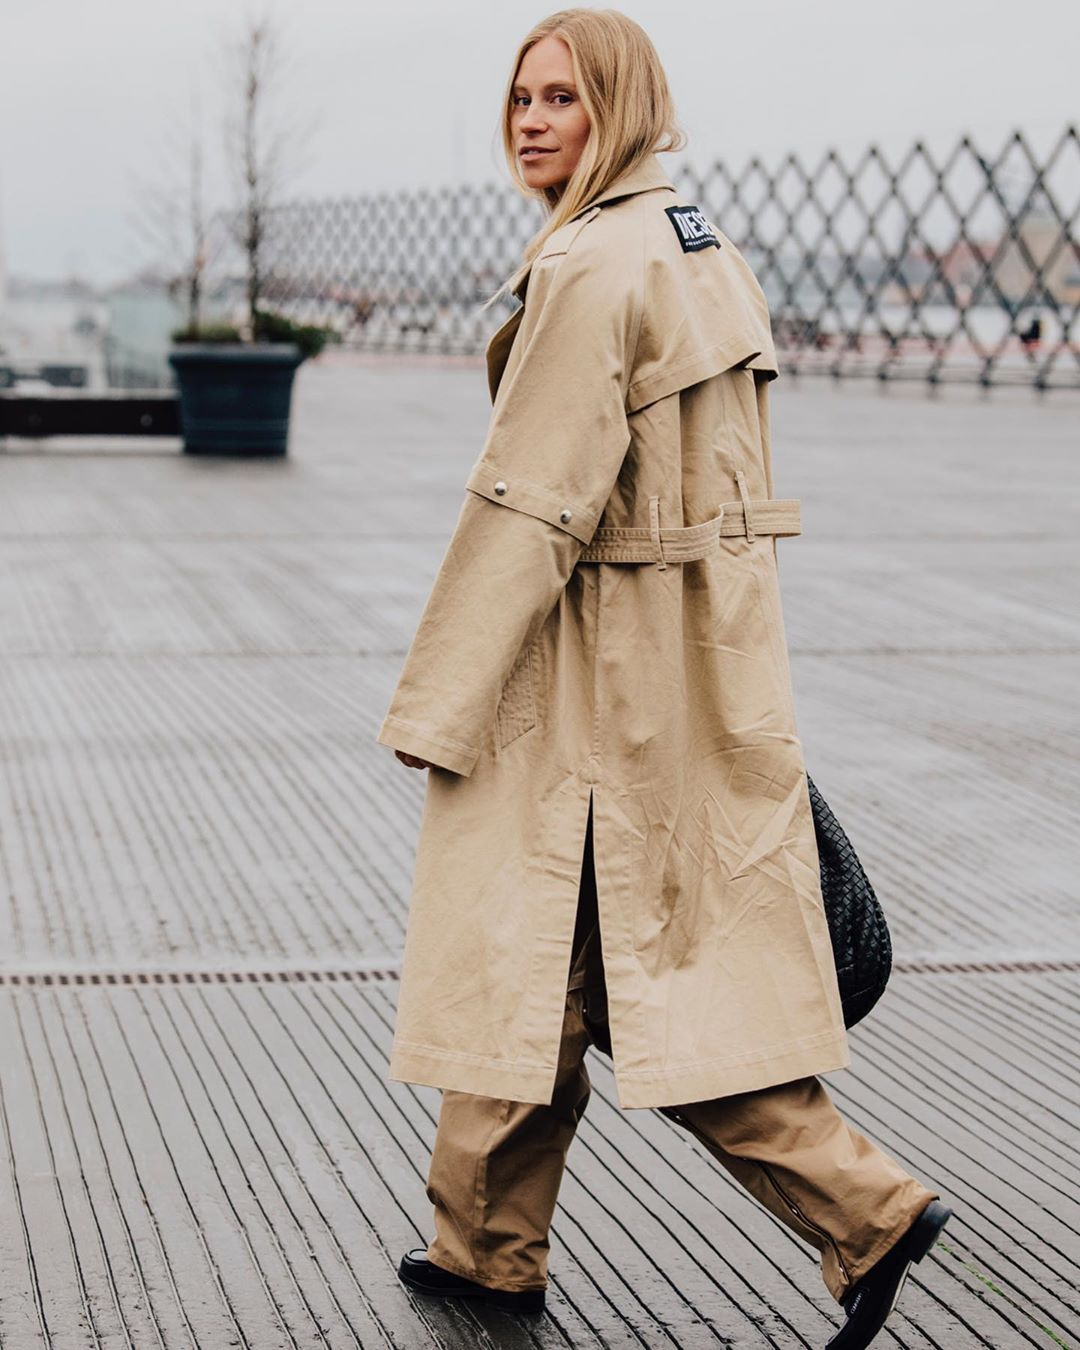 tine-andrea-diesel-double-breasted-trench-coat-street-style